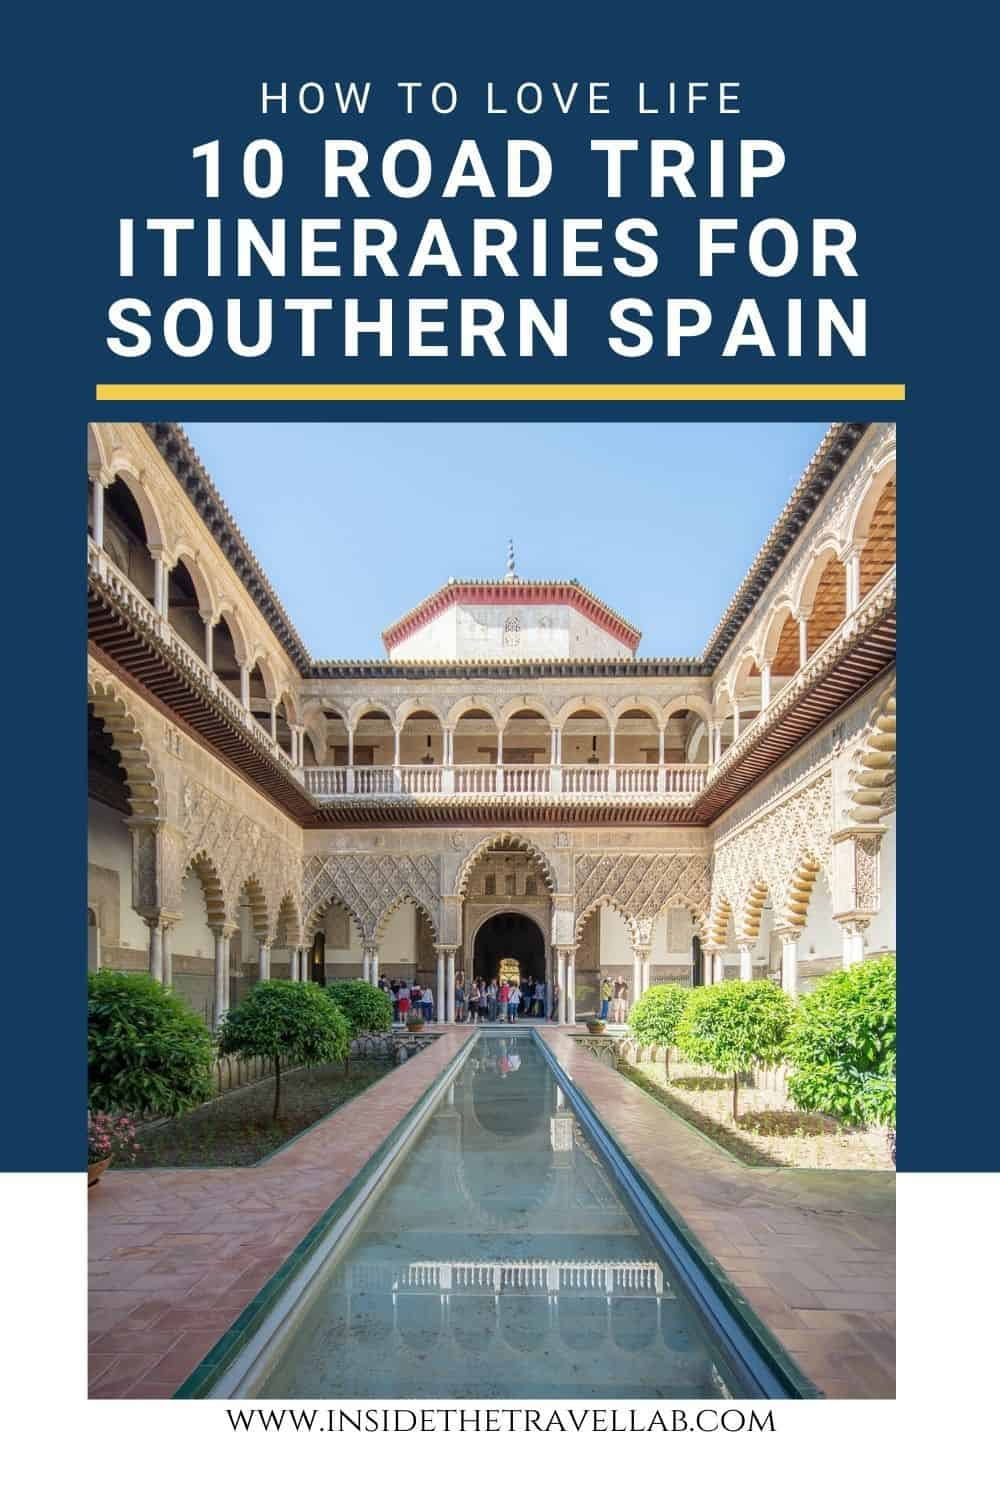 Southern Spain Travel Guide and Southern Spain Road Trip Itinerary - driving in Spain to include the Alhambra